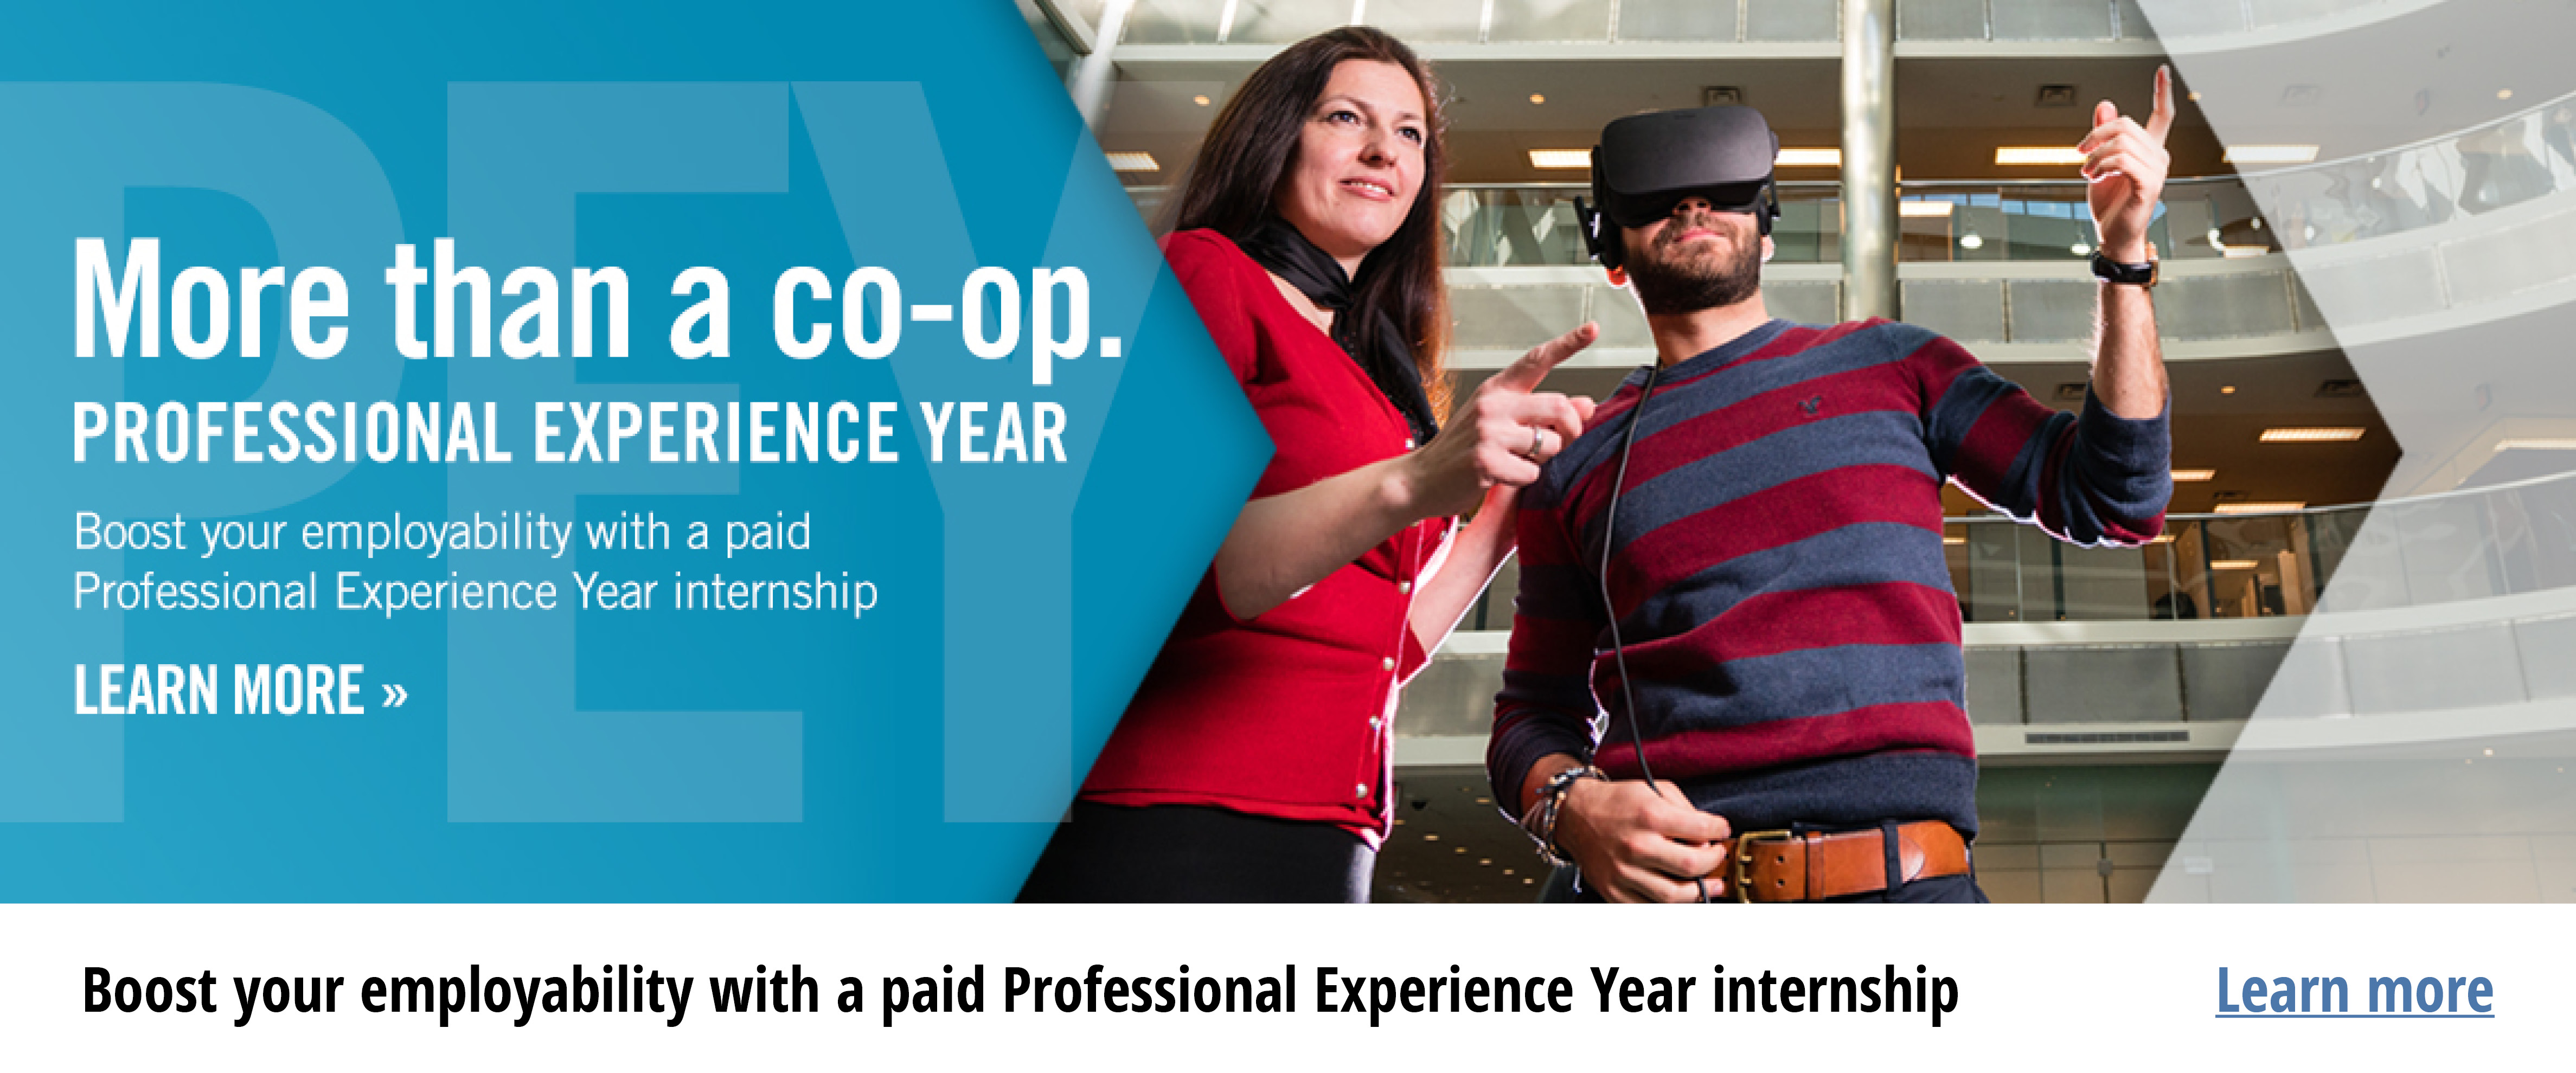 Boost your employability with a paid Professional Experience Year internship  Learn more